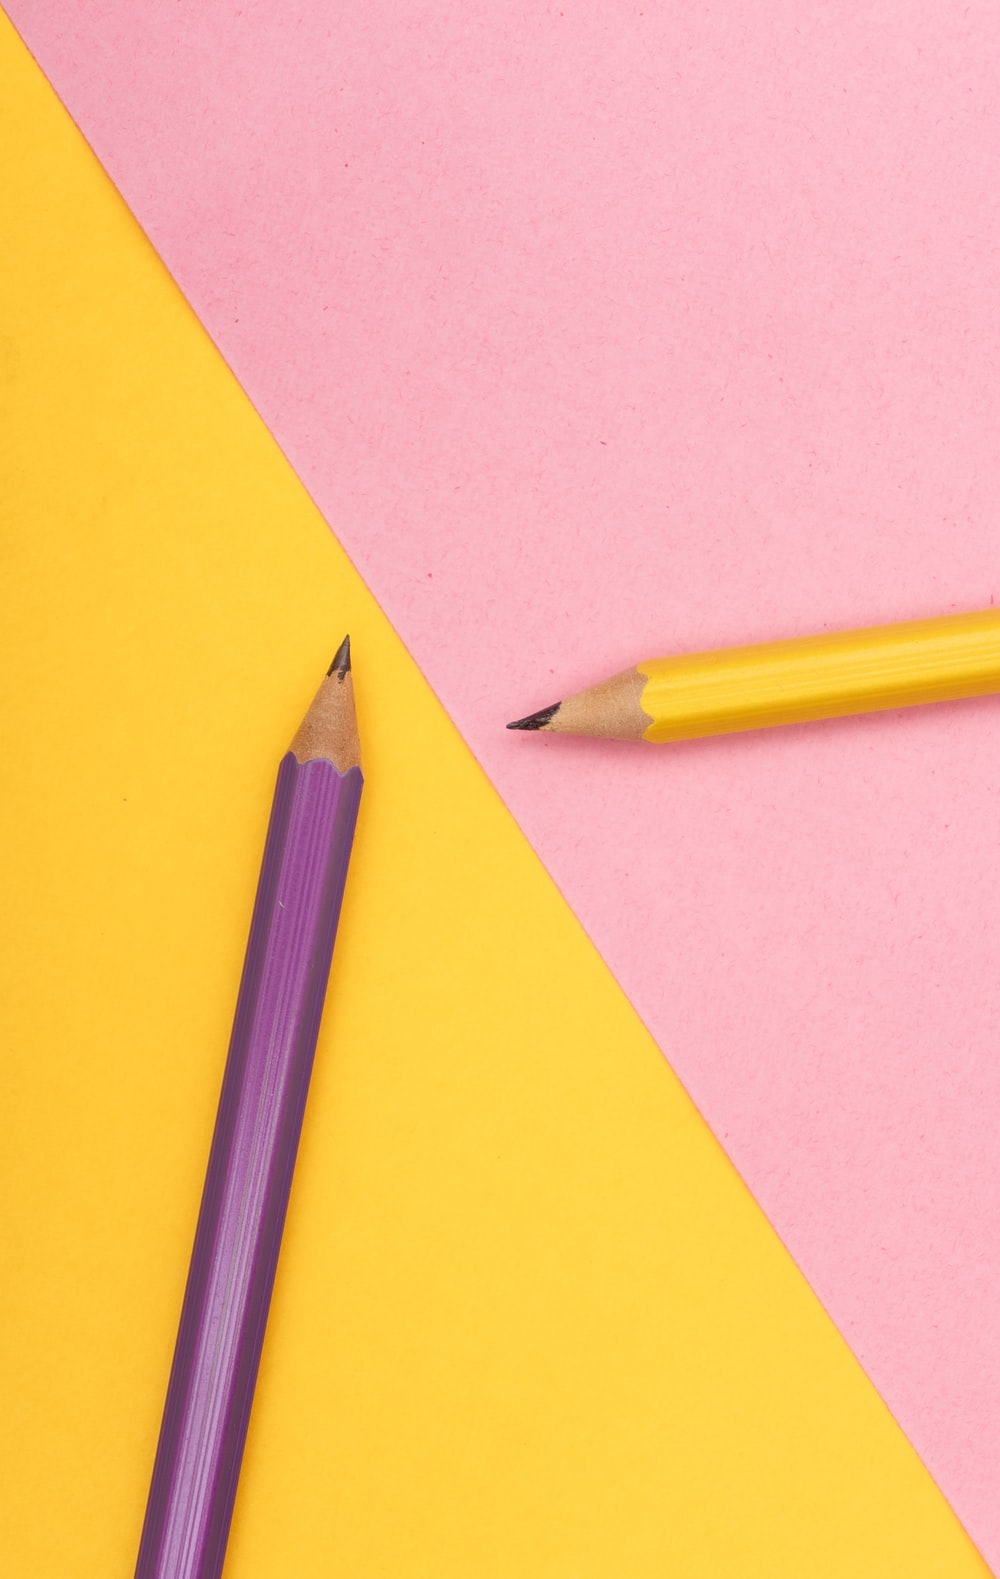 yellow pencil on yellow paper